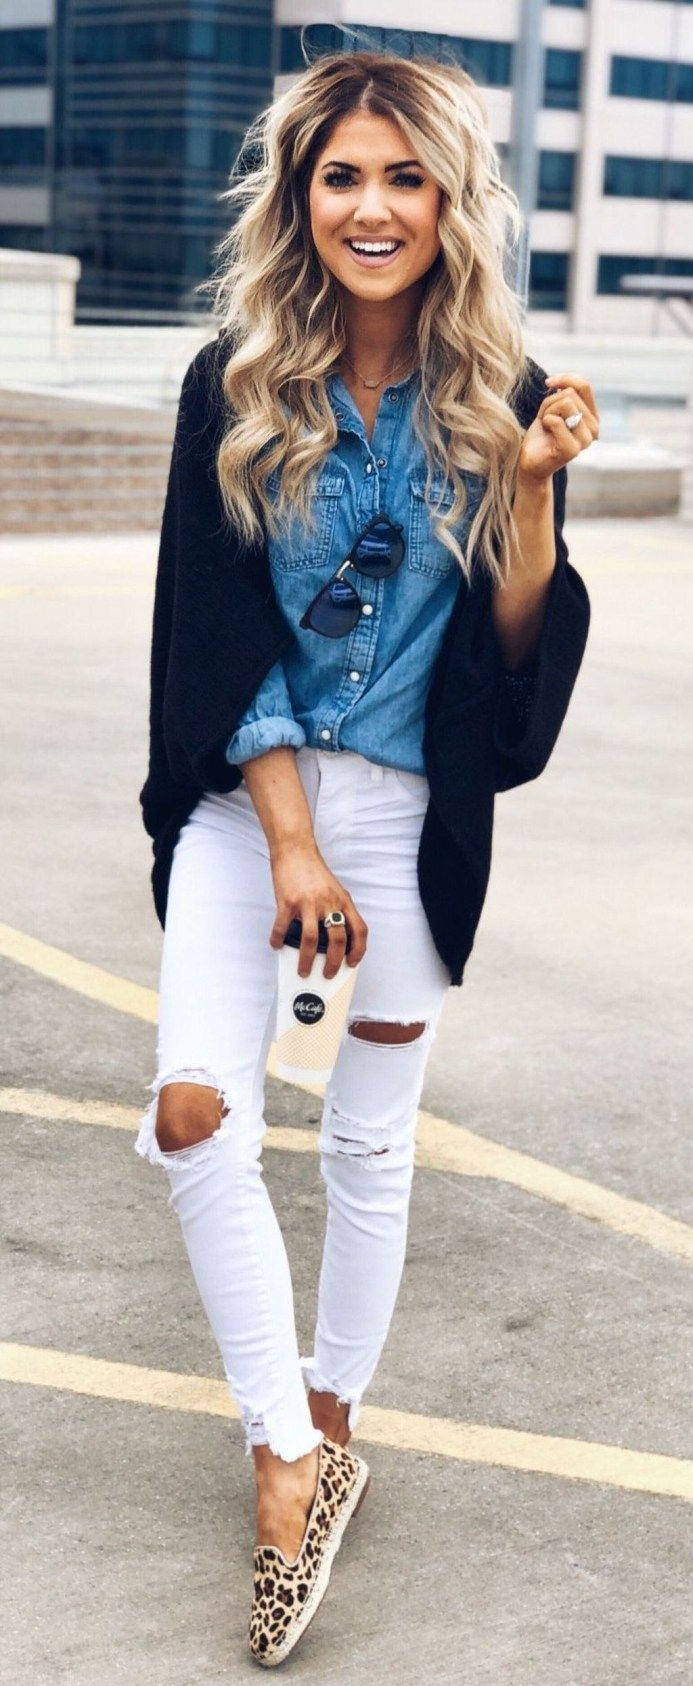 20+ Simple Spring Outfits Ideas You Should Already Own